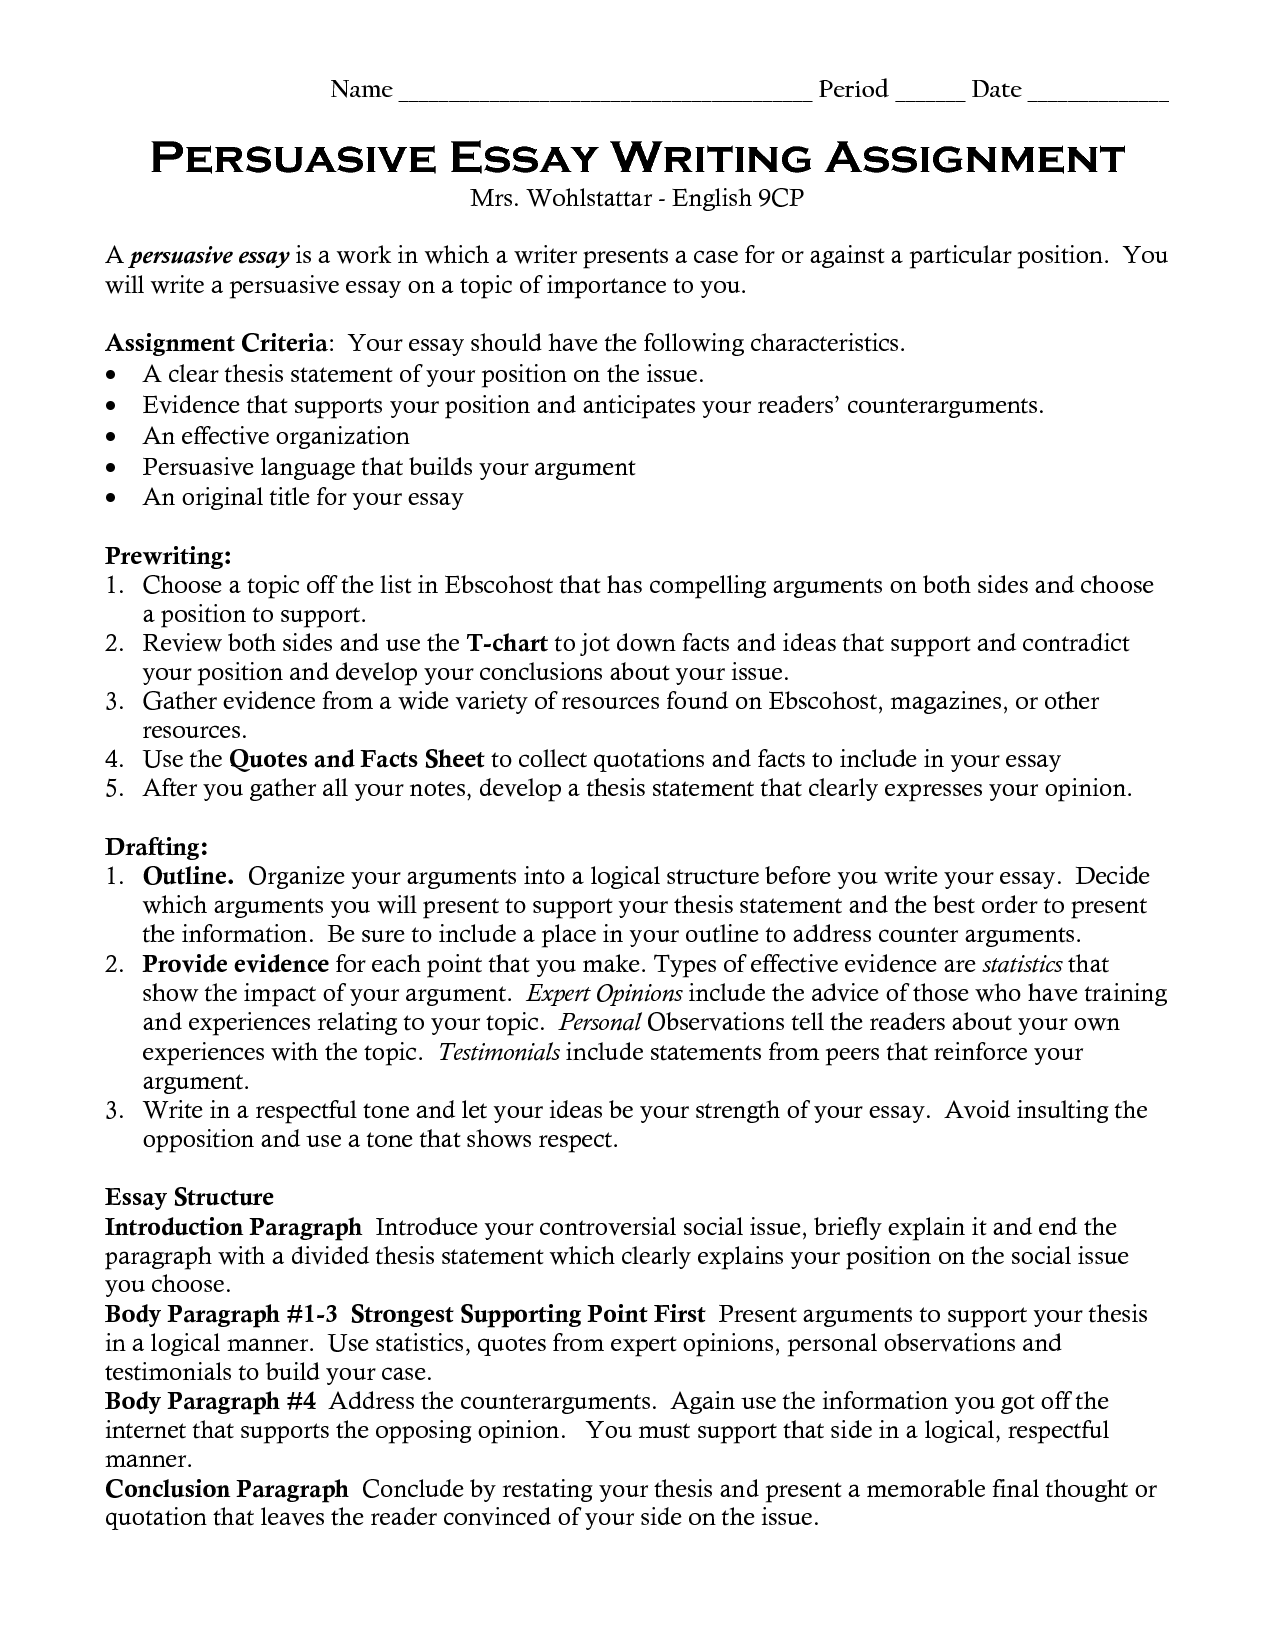 008 Essay Example Argumentative On Child Abuse Uses Research Paper Numbers How To Write Good Persuasivelusion Successful Introduction Thesis Outline Tips For Archaicawful Conclusion Of Drug Alcohol Full